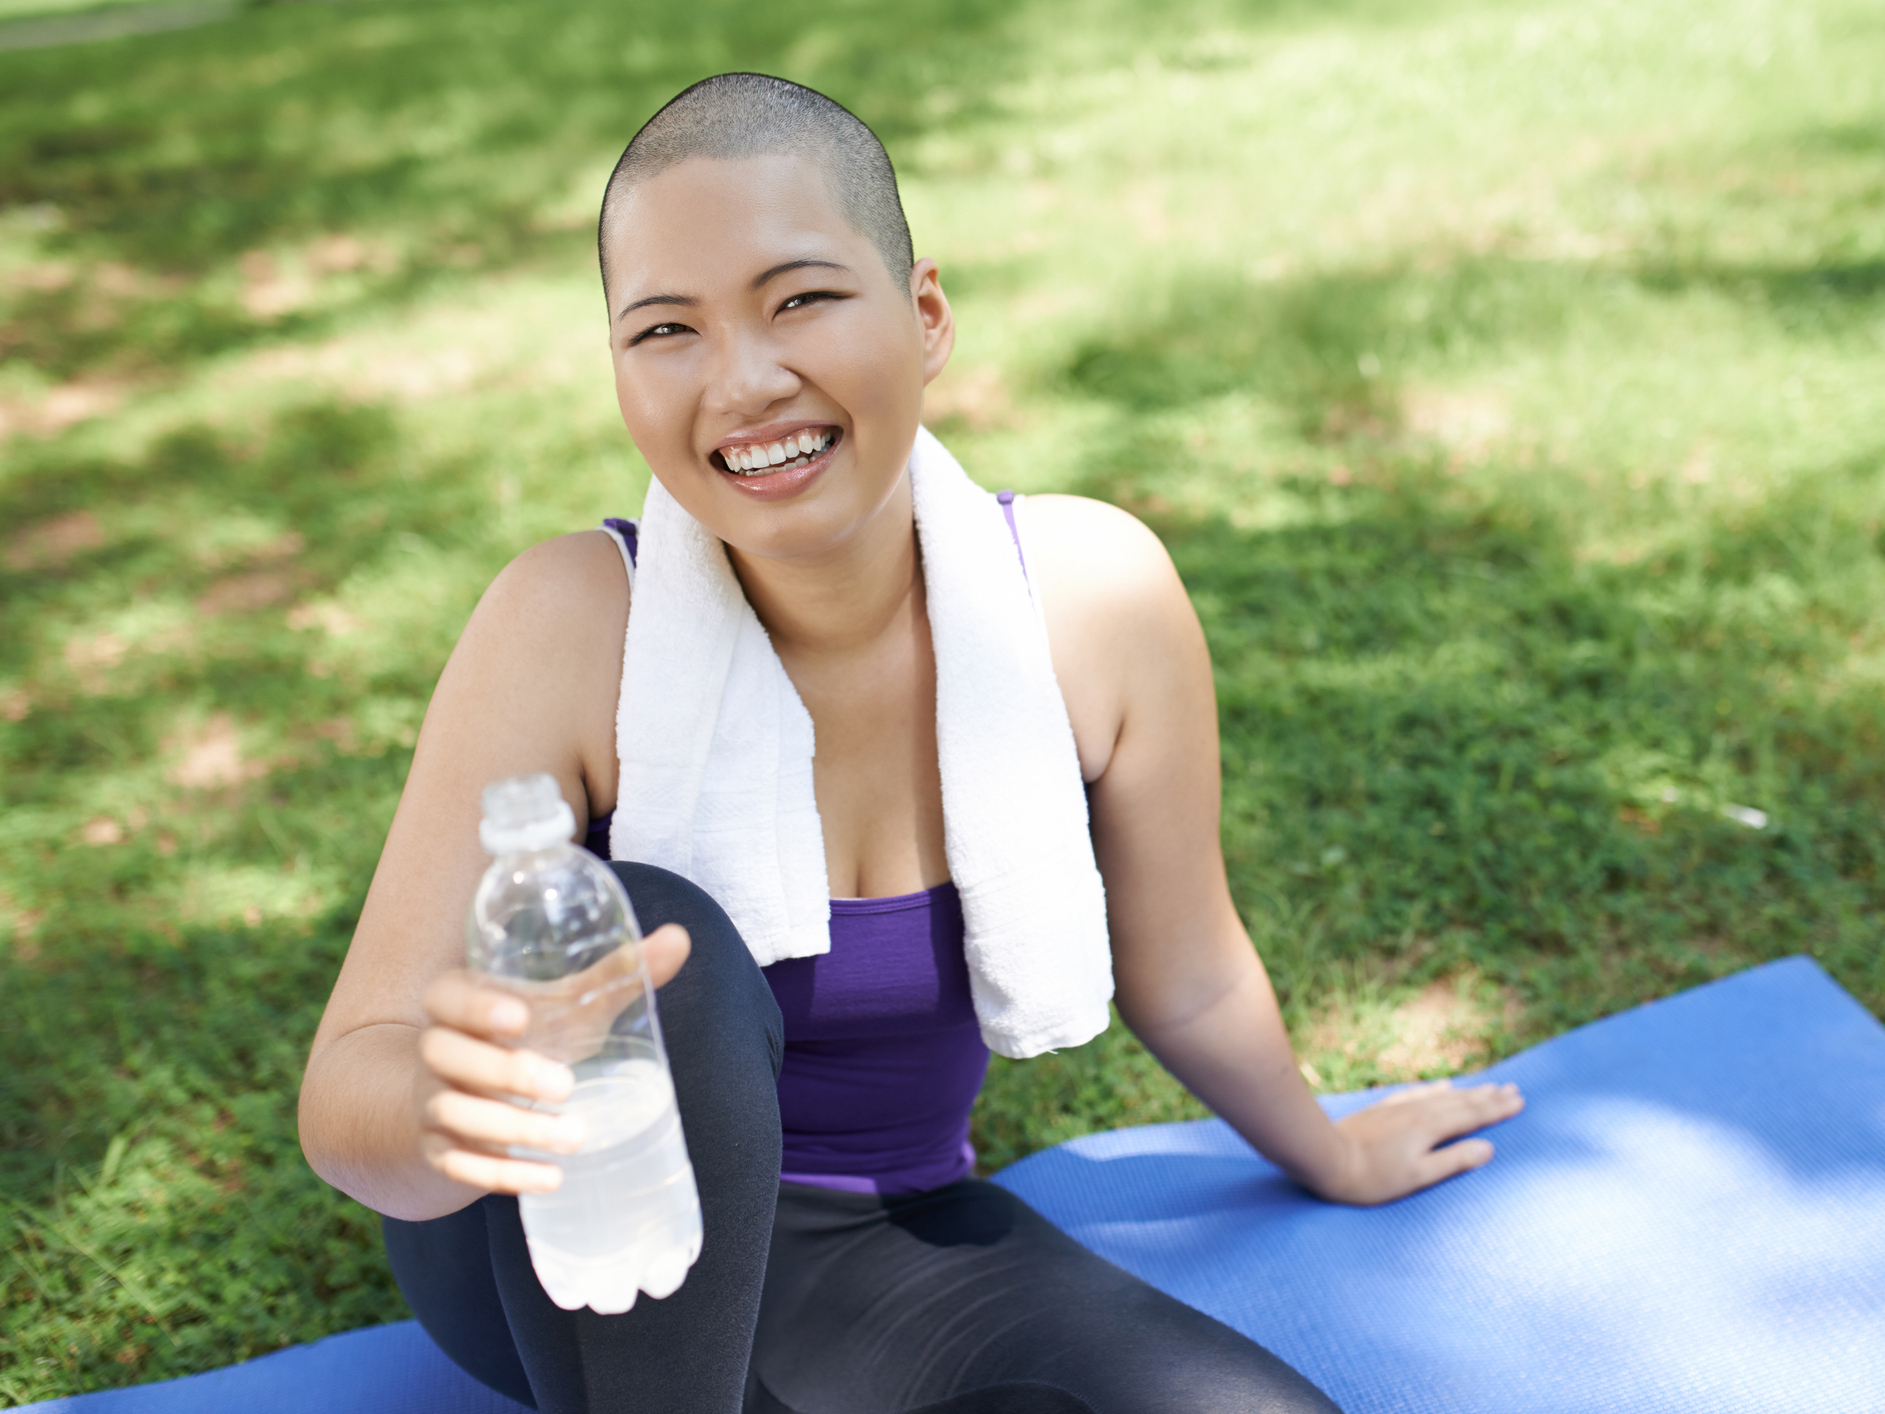 How to keep chemo from giving you heart disease